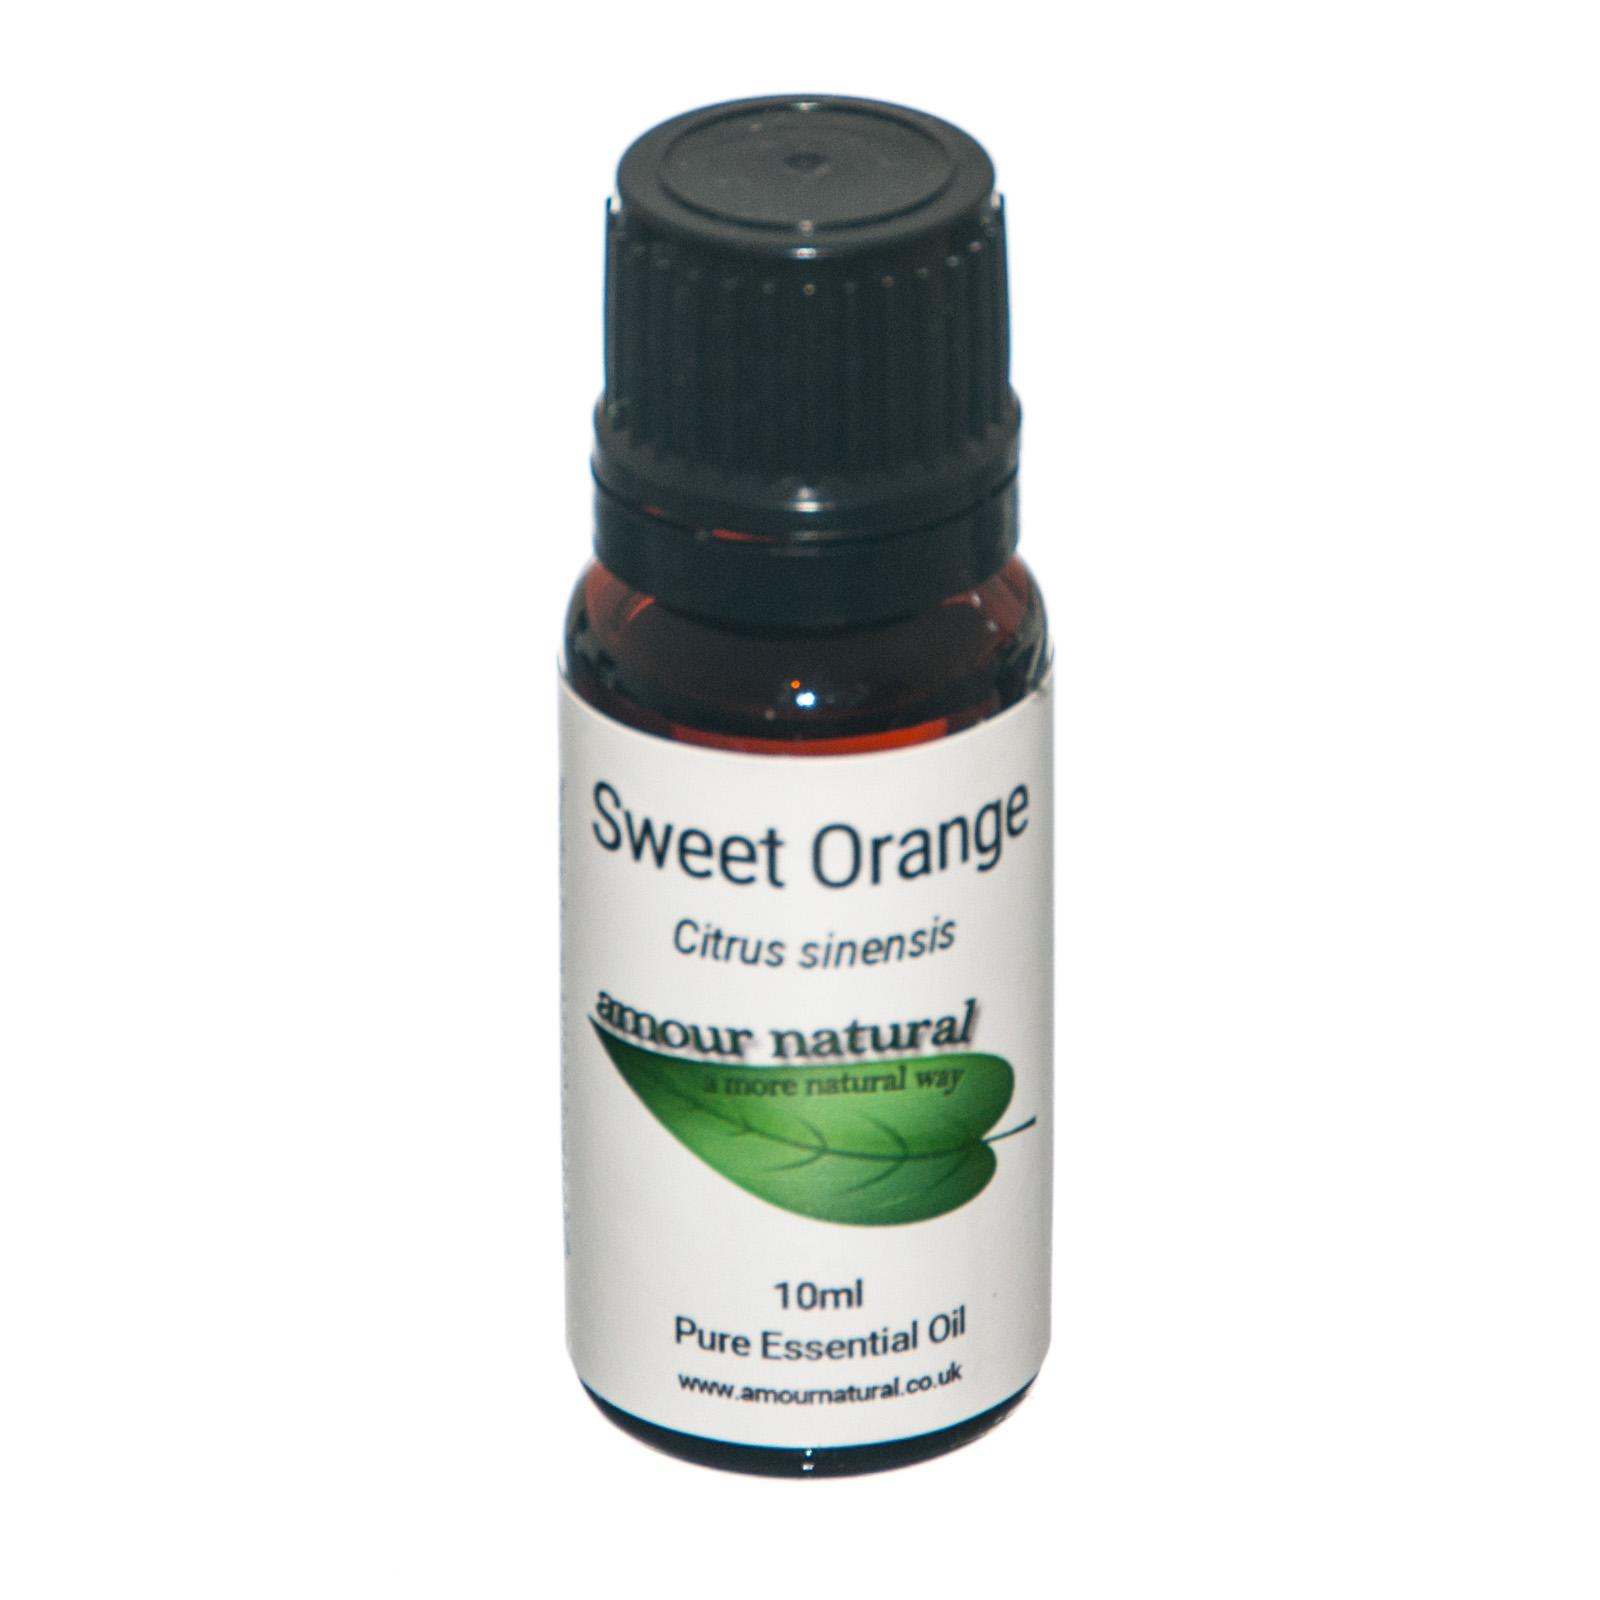 1 x 10 ml bottle of  Sweet Orange Essential Oil